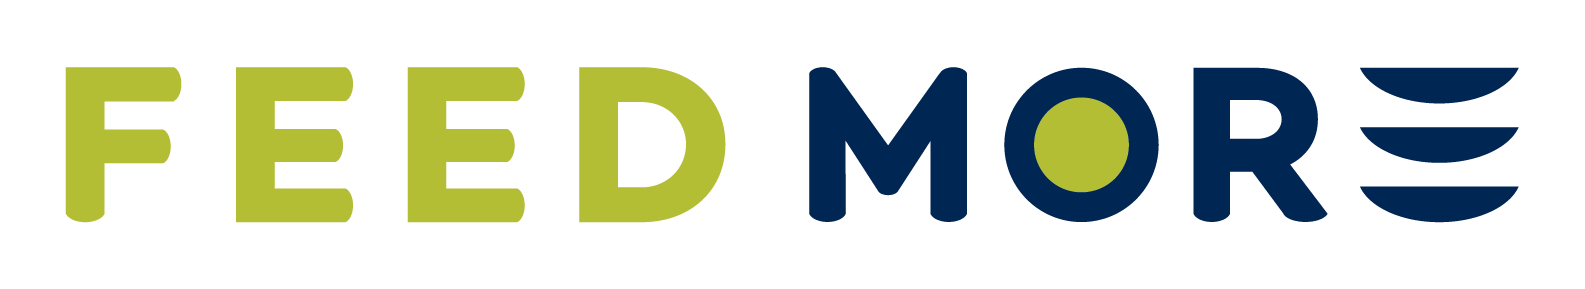 Feed-More-PrimaryLogo-horizontal-2color-print.png